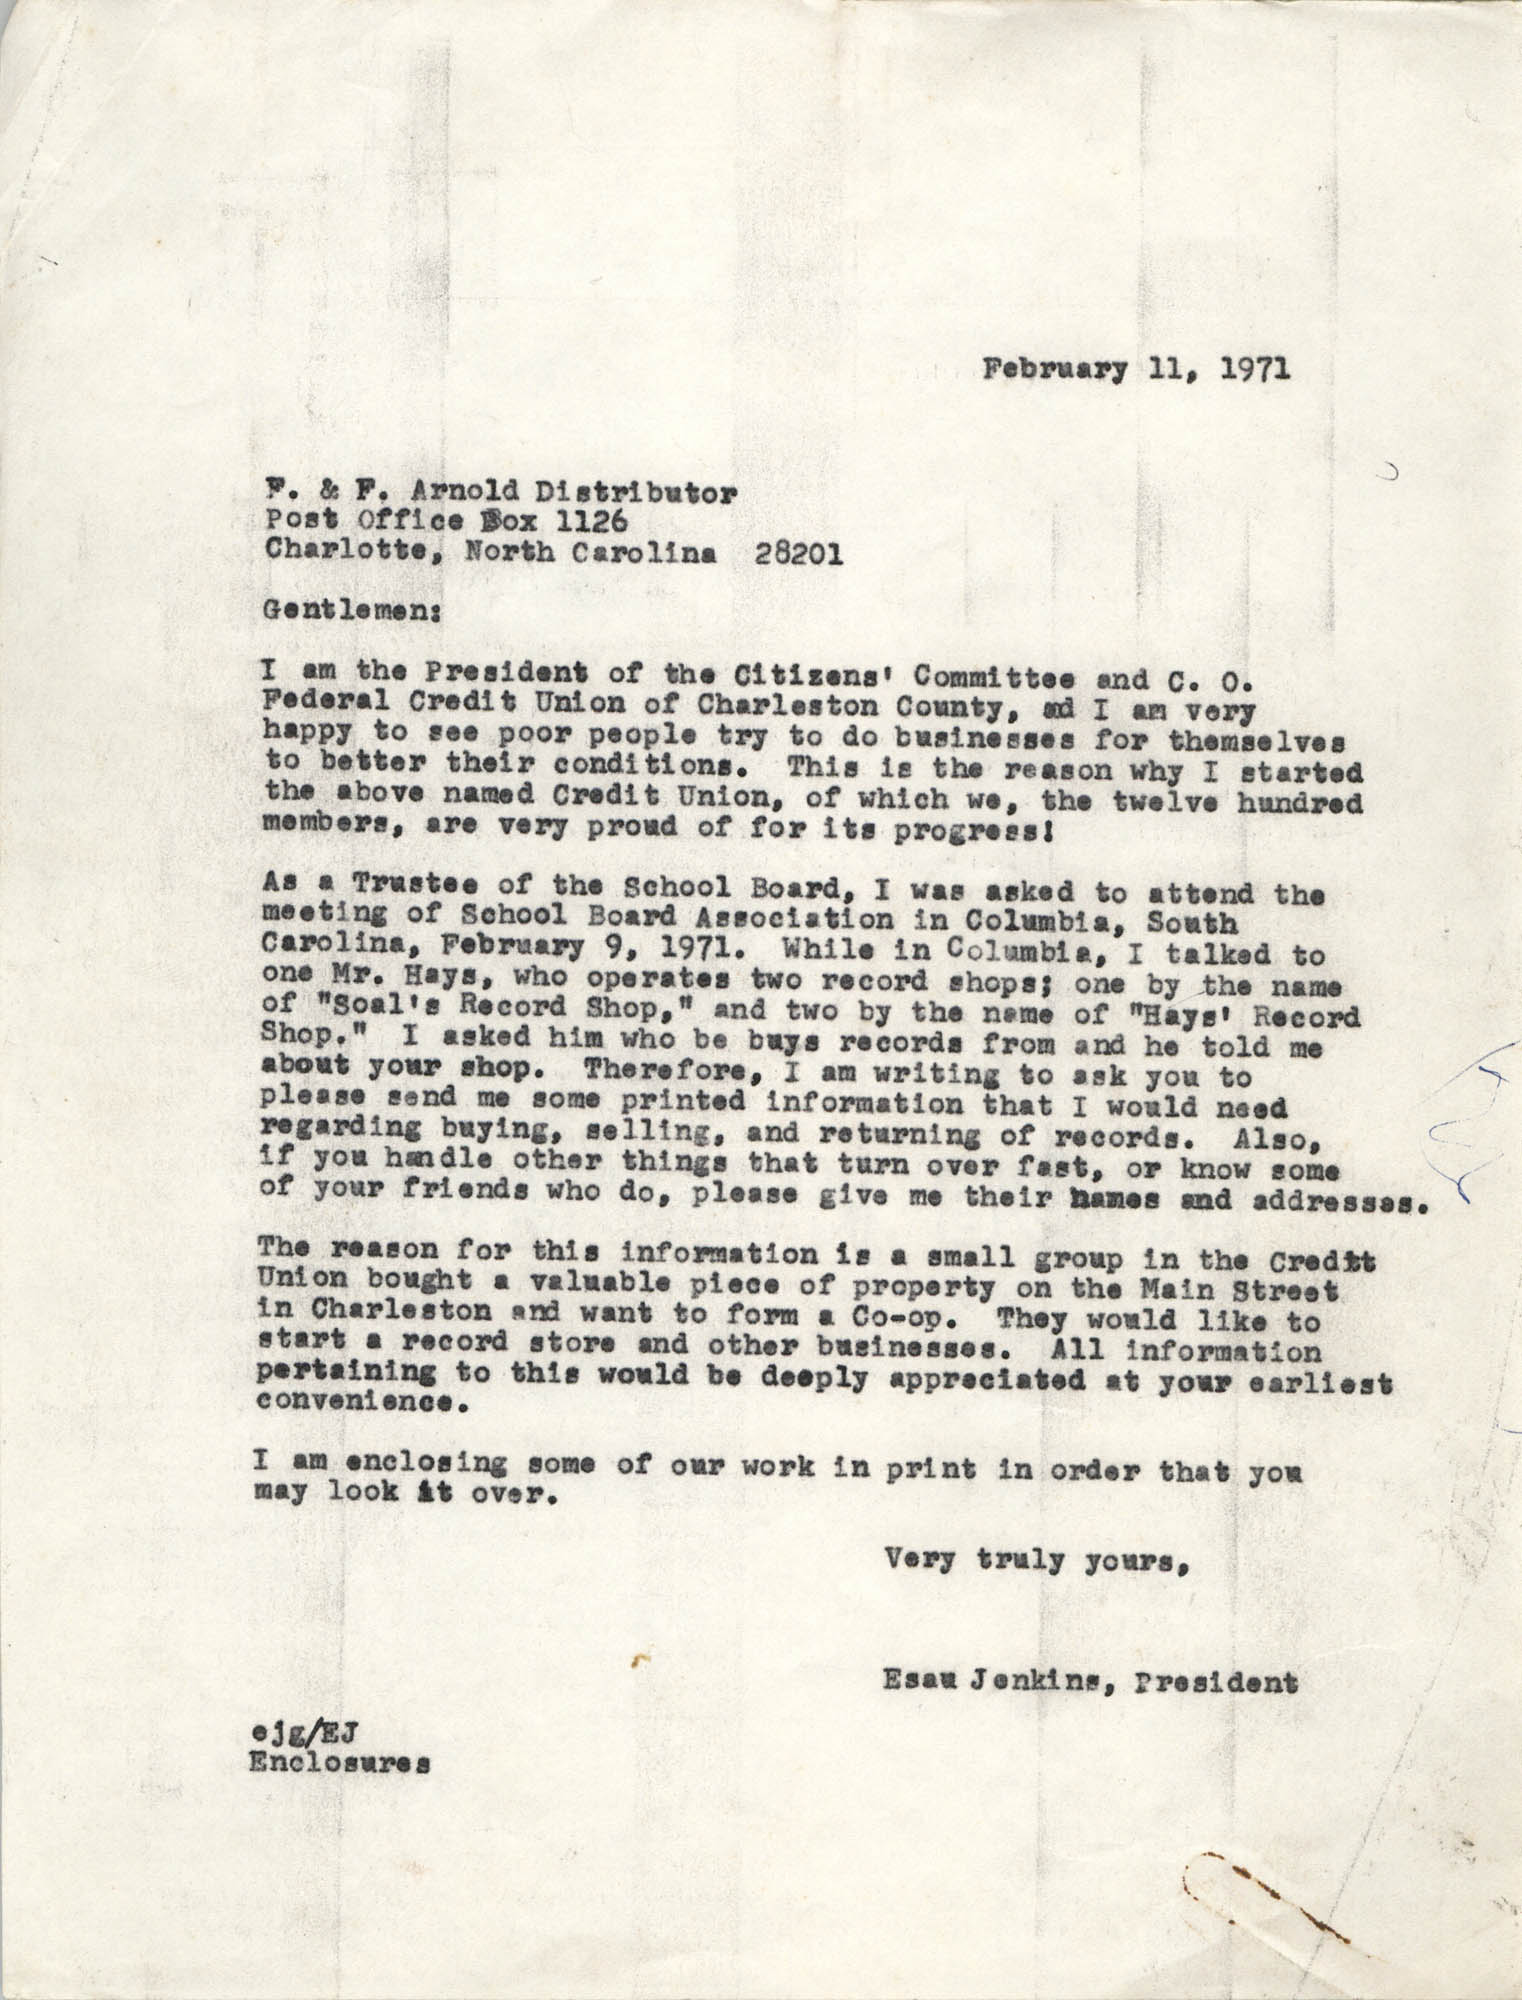 Letter from Esau Jenkins to F. and F. Arnold Distributor, February 11, 1971